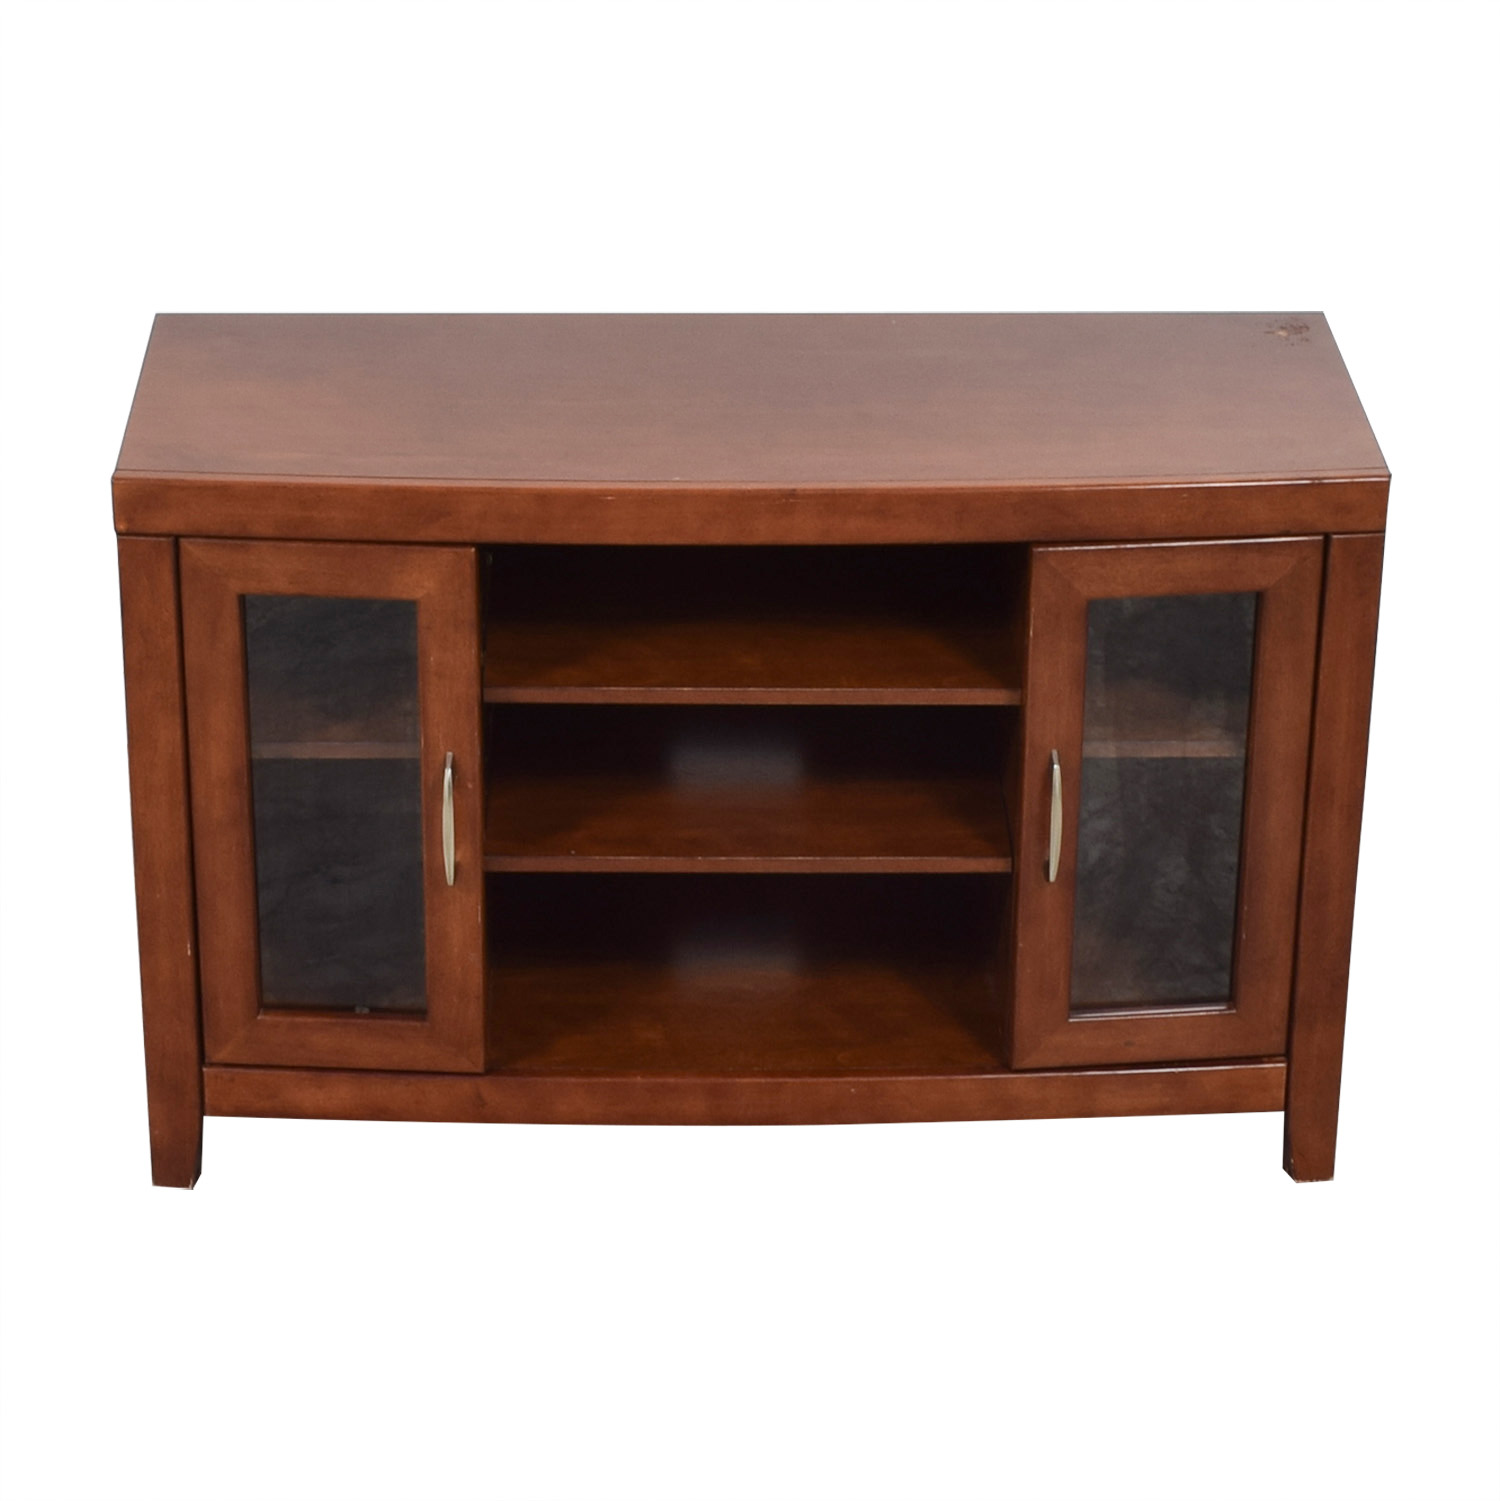 buy Raymour & Flanigan Raymour & Flanigan Del Mar Cherry TV Stand online